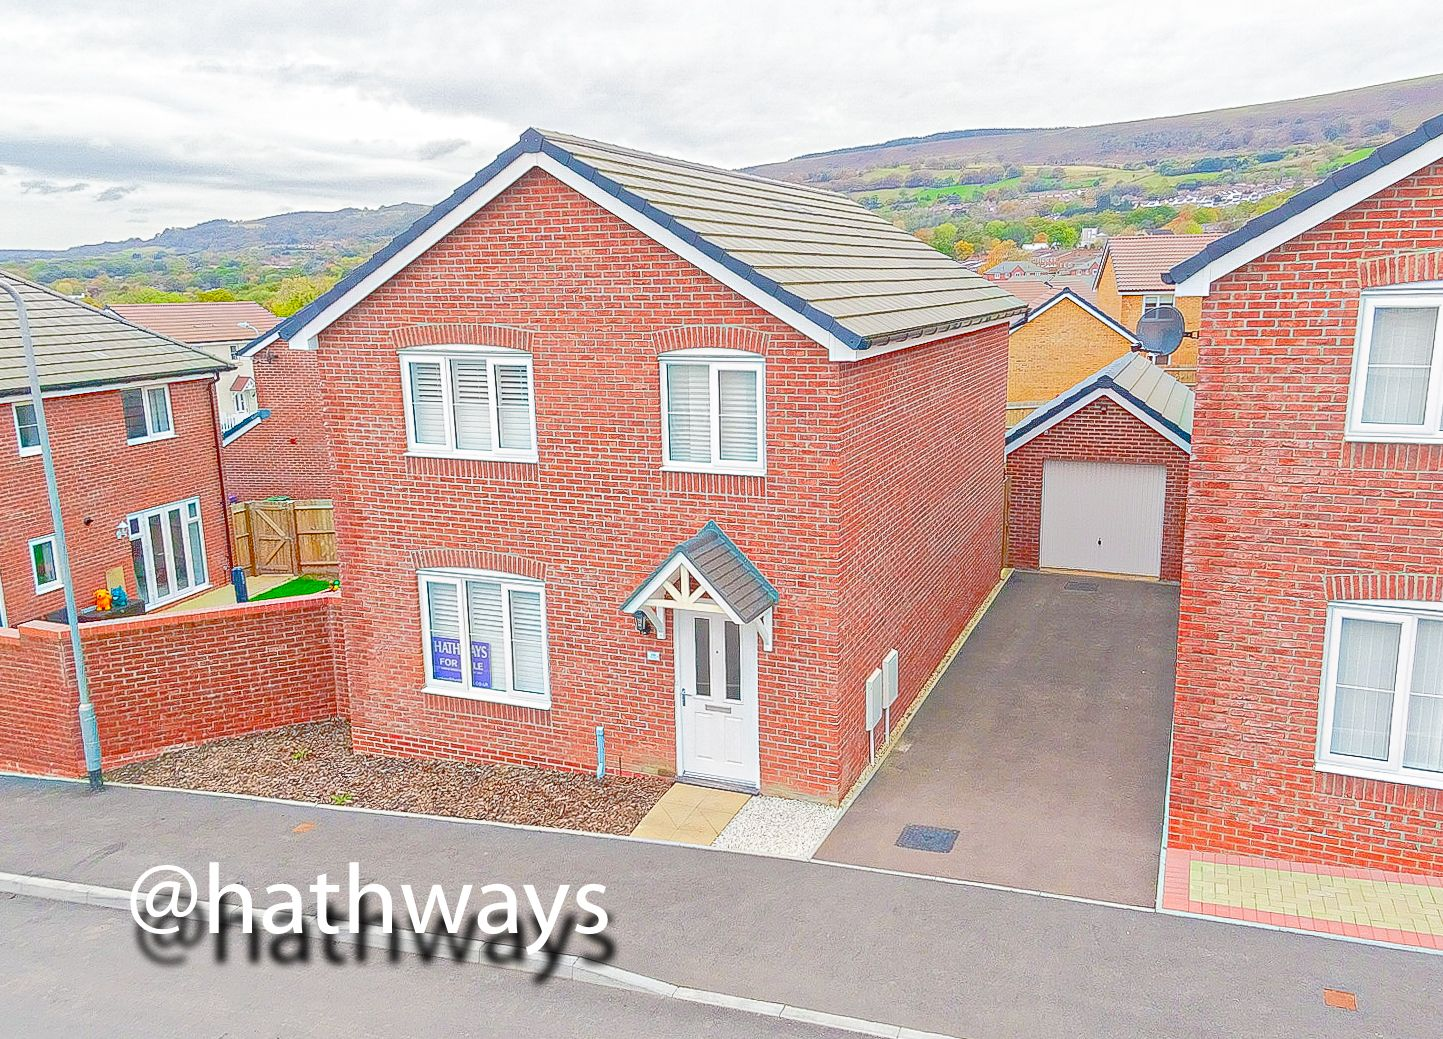 4 bed house for sale in Cwrt Celyn 1